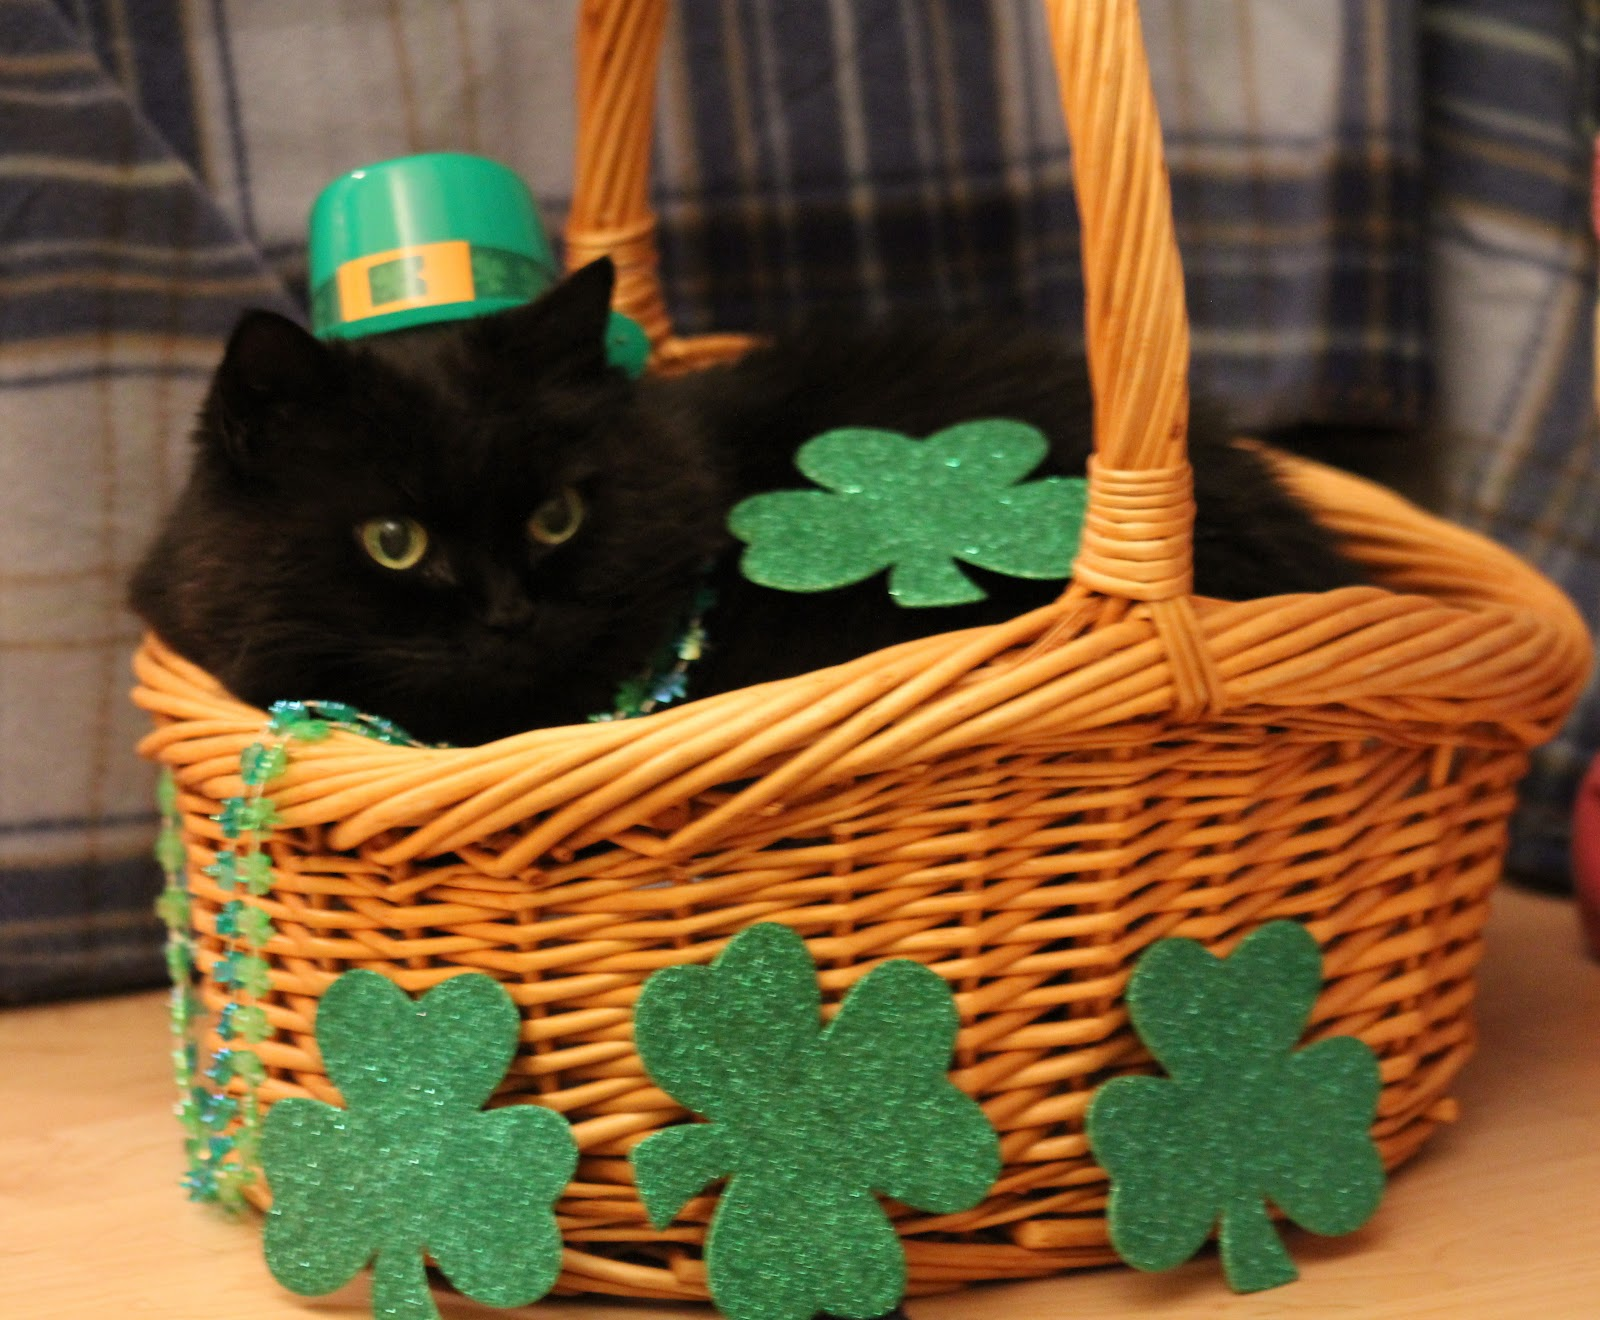 36] St Patricks Day Cat Wallpaper on WallpaperSafari 1600x1320